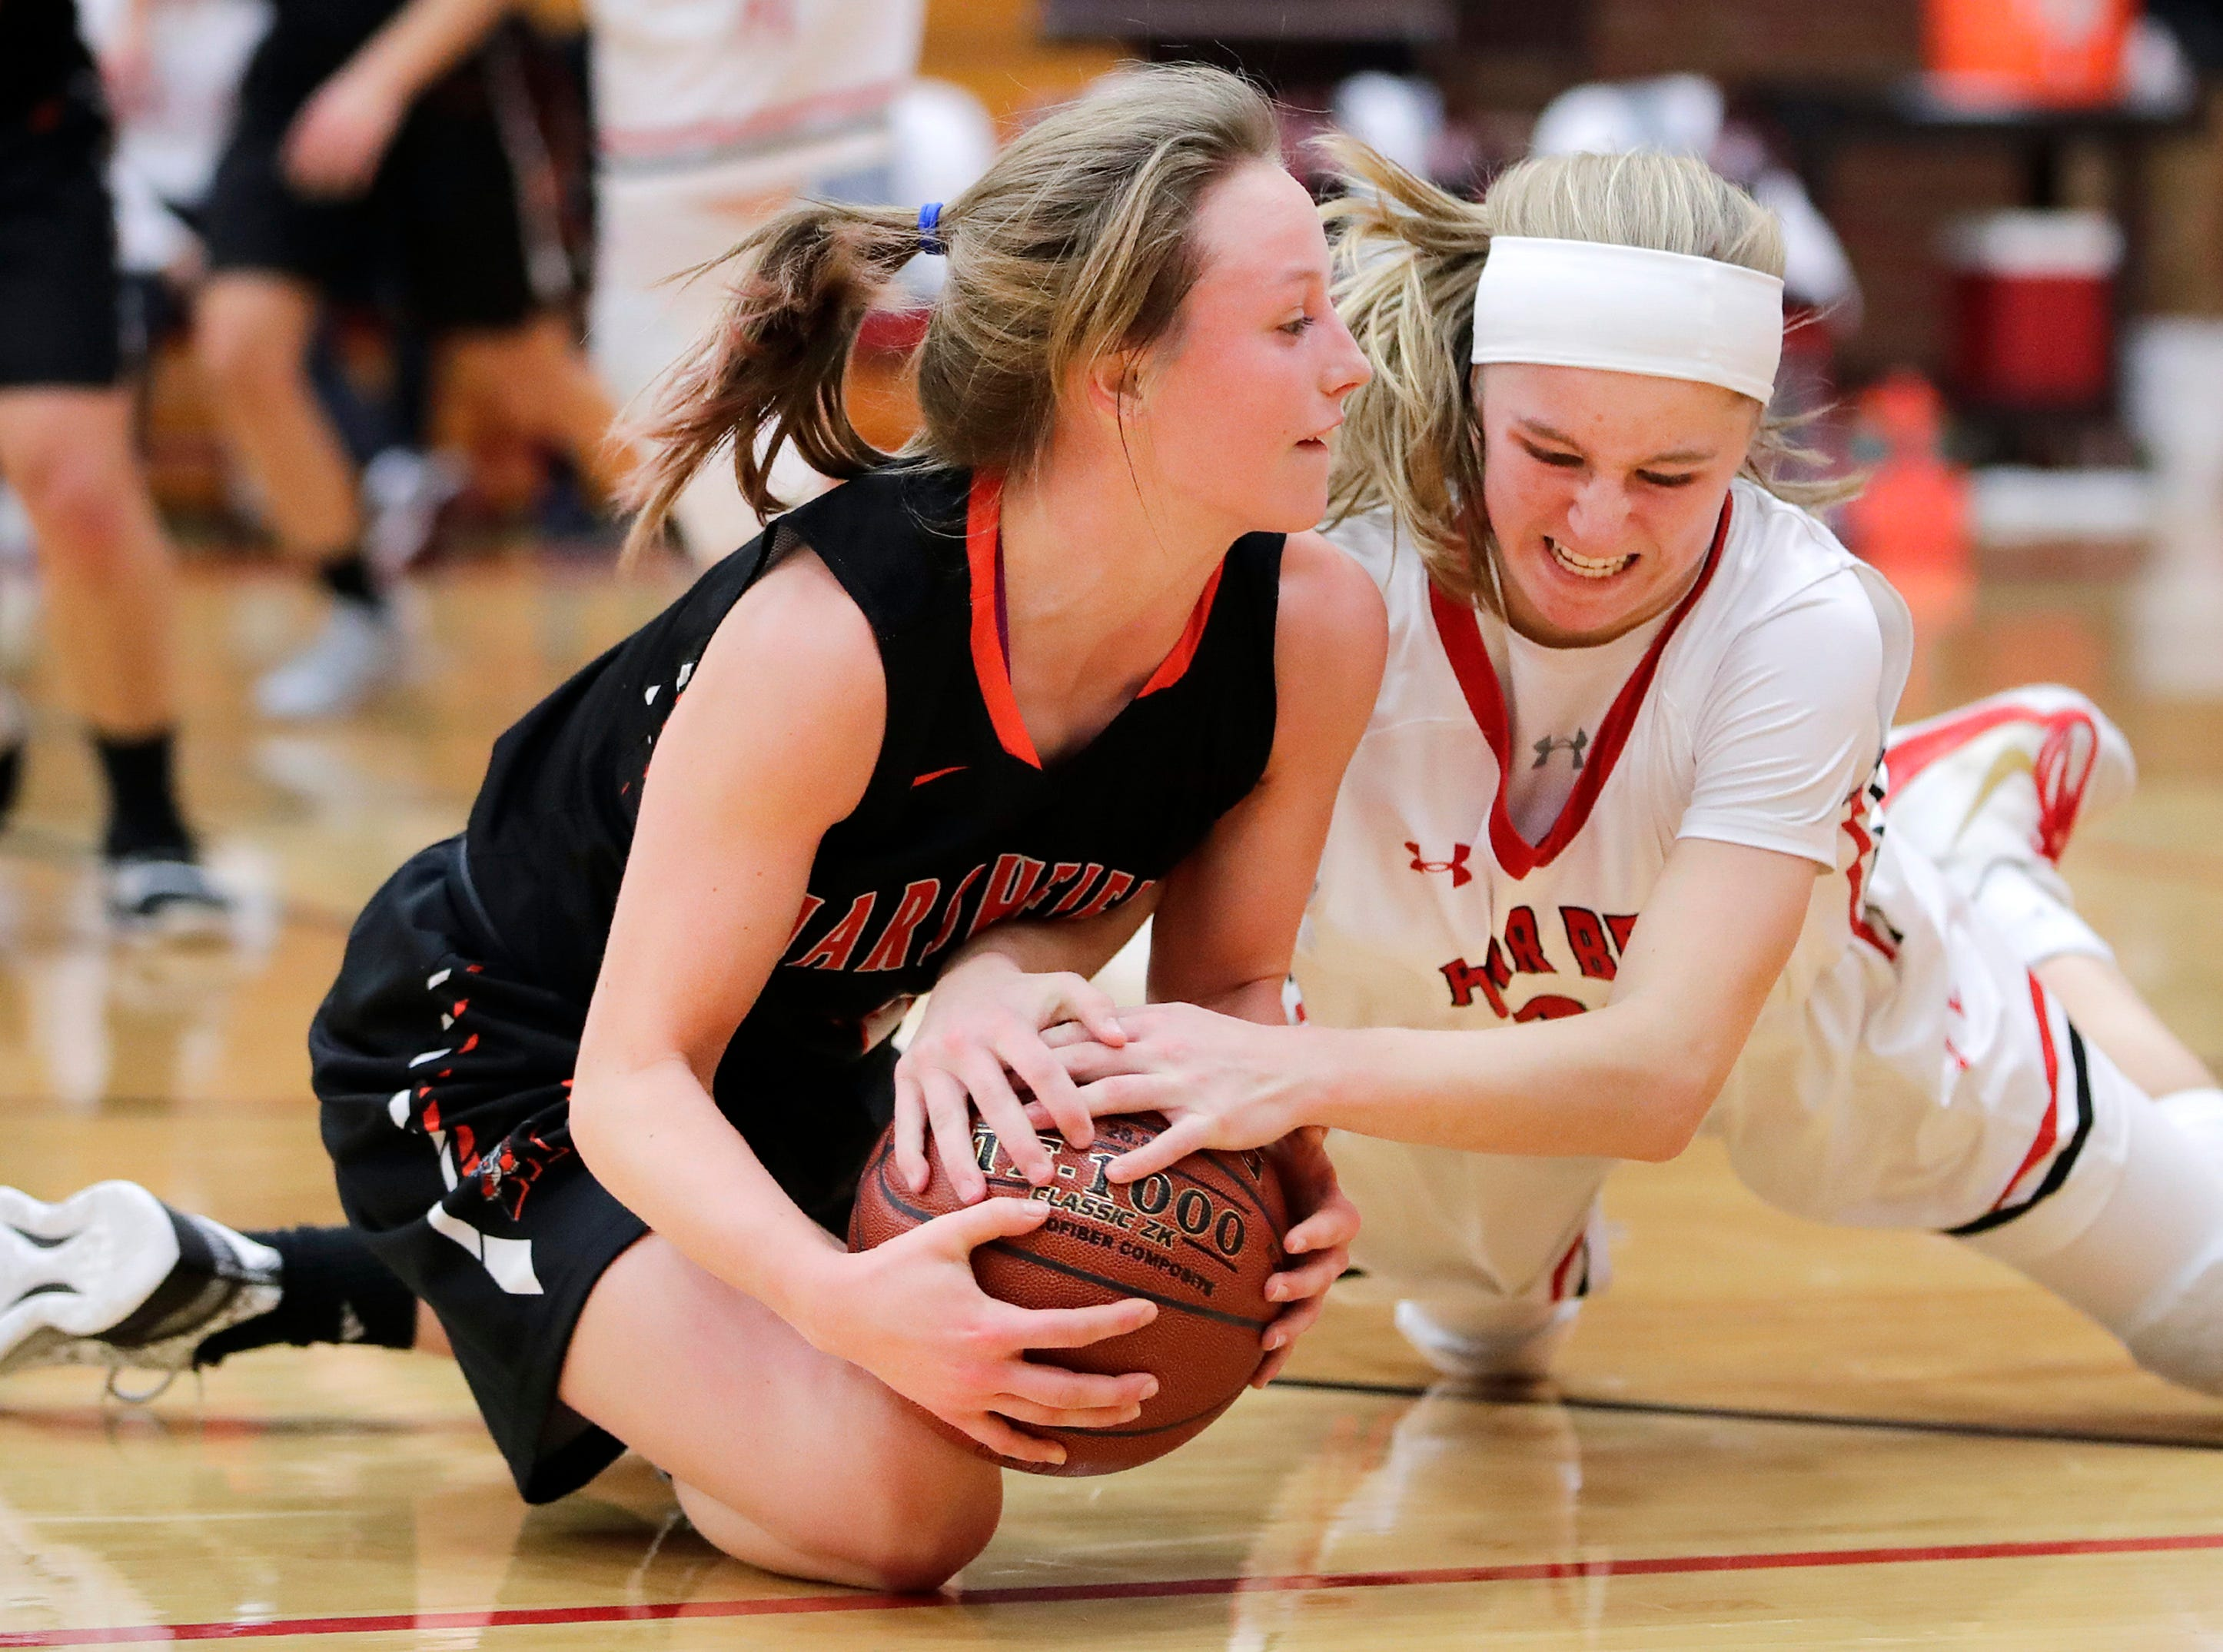 Marshfield High School's Kaydee Johnson and Hortonville High School's Kammy Peppler fight for control of a loose ball Thursday, Nov. 15, 2018, in Hortonville, Wis. Hortonville High School defeated Marshfield High School 59-47.